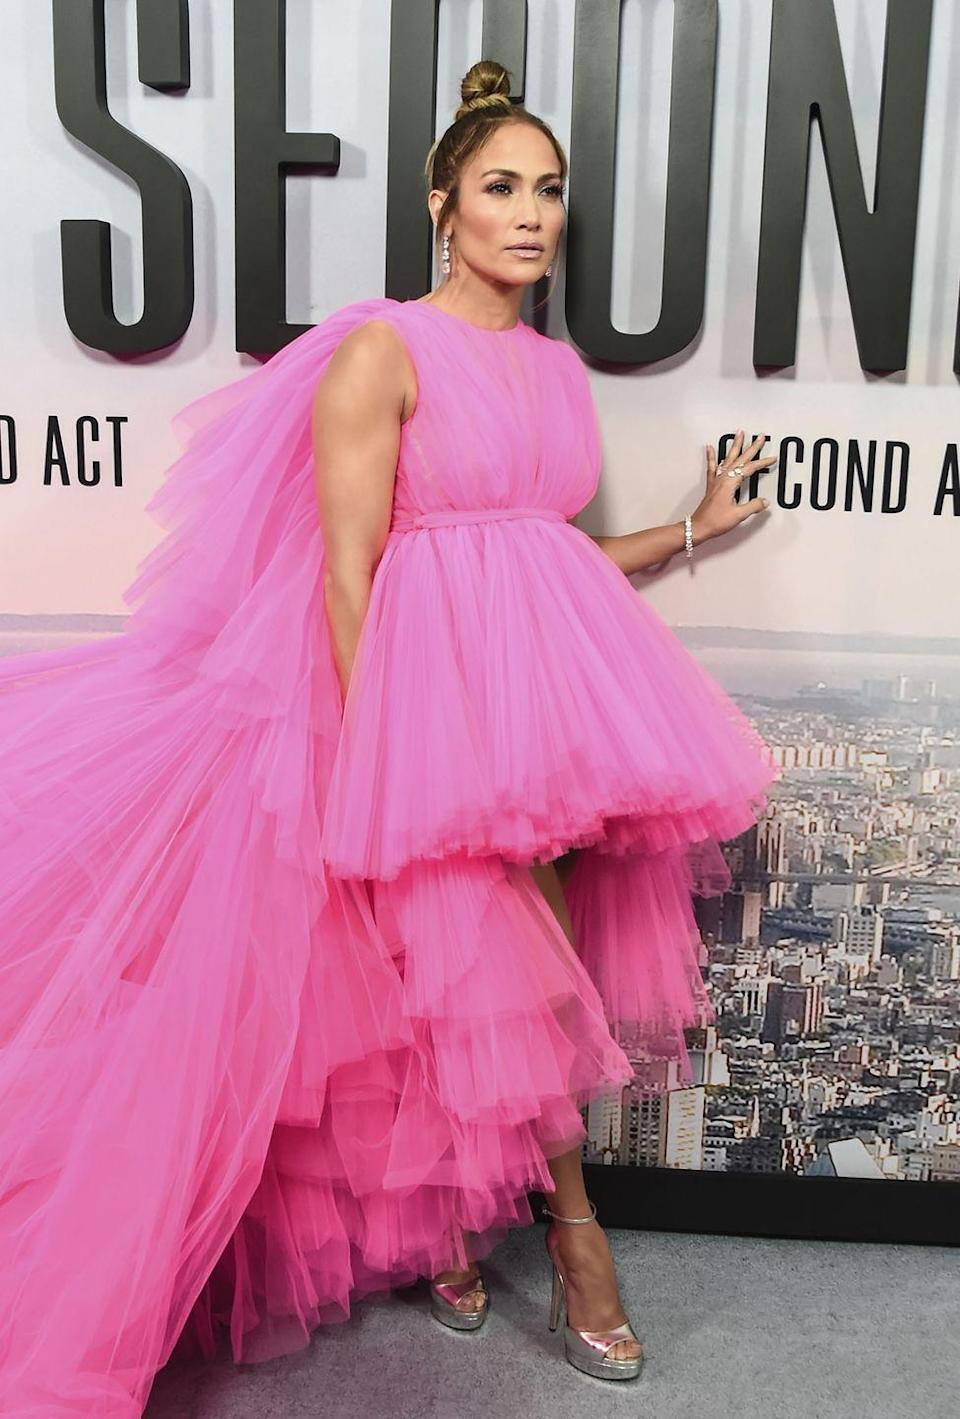 <p>Jennifer Lopez attends the <em>Second Act</em> world premiere in New York City wearing a hot-pink tulle gown by Giambattista Valli. On a related note, I'm now craving cotton candy. </p>